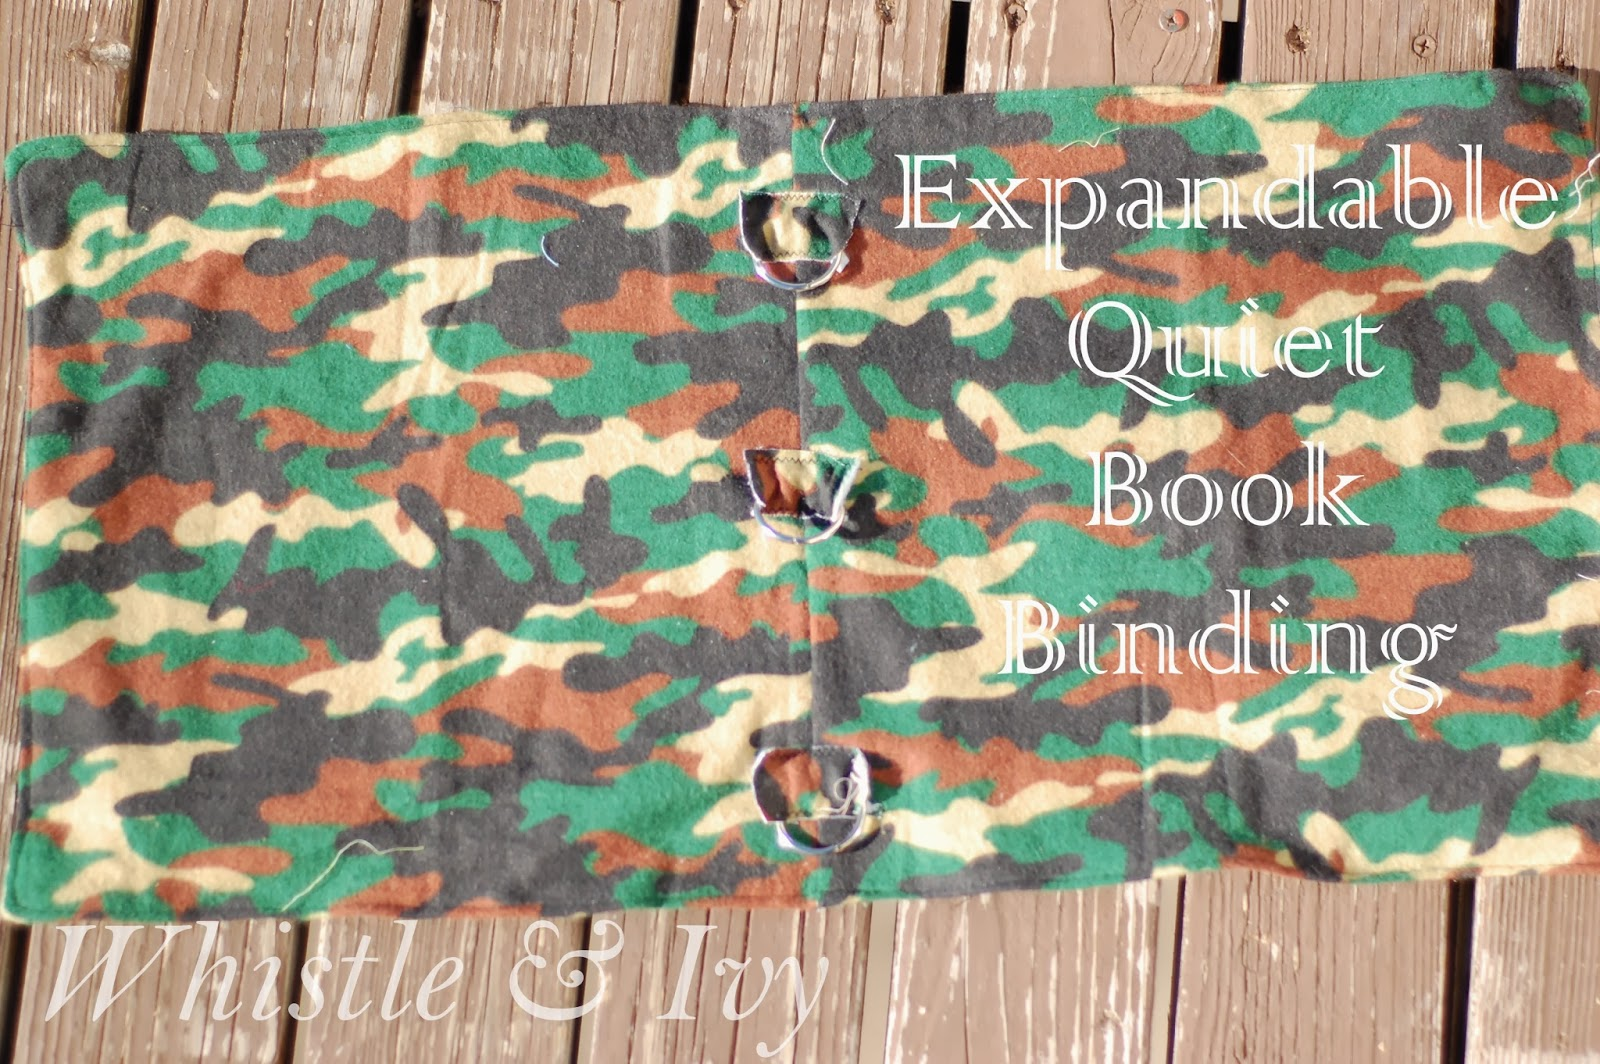 Expandable quiet book binding DIY sewing